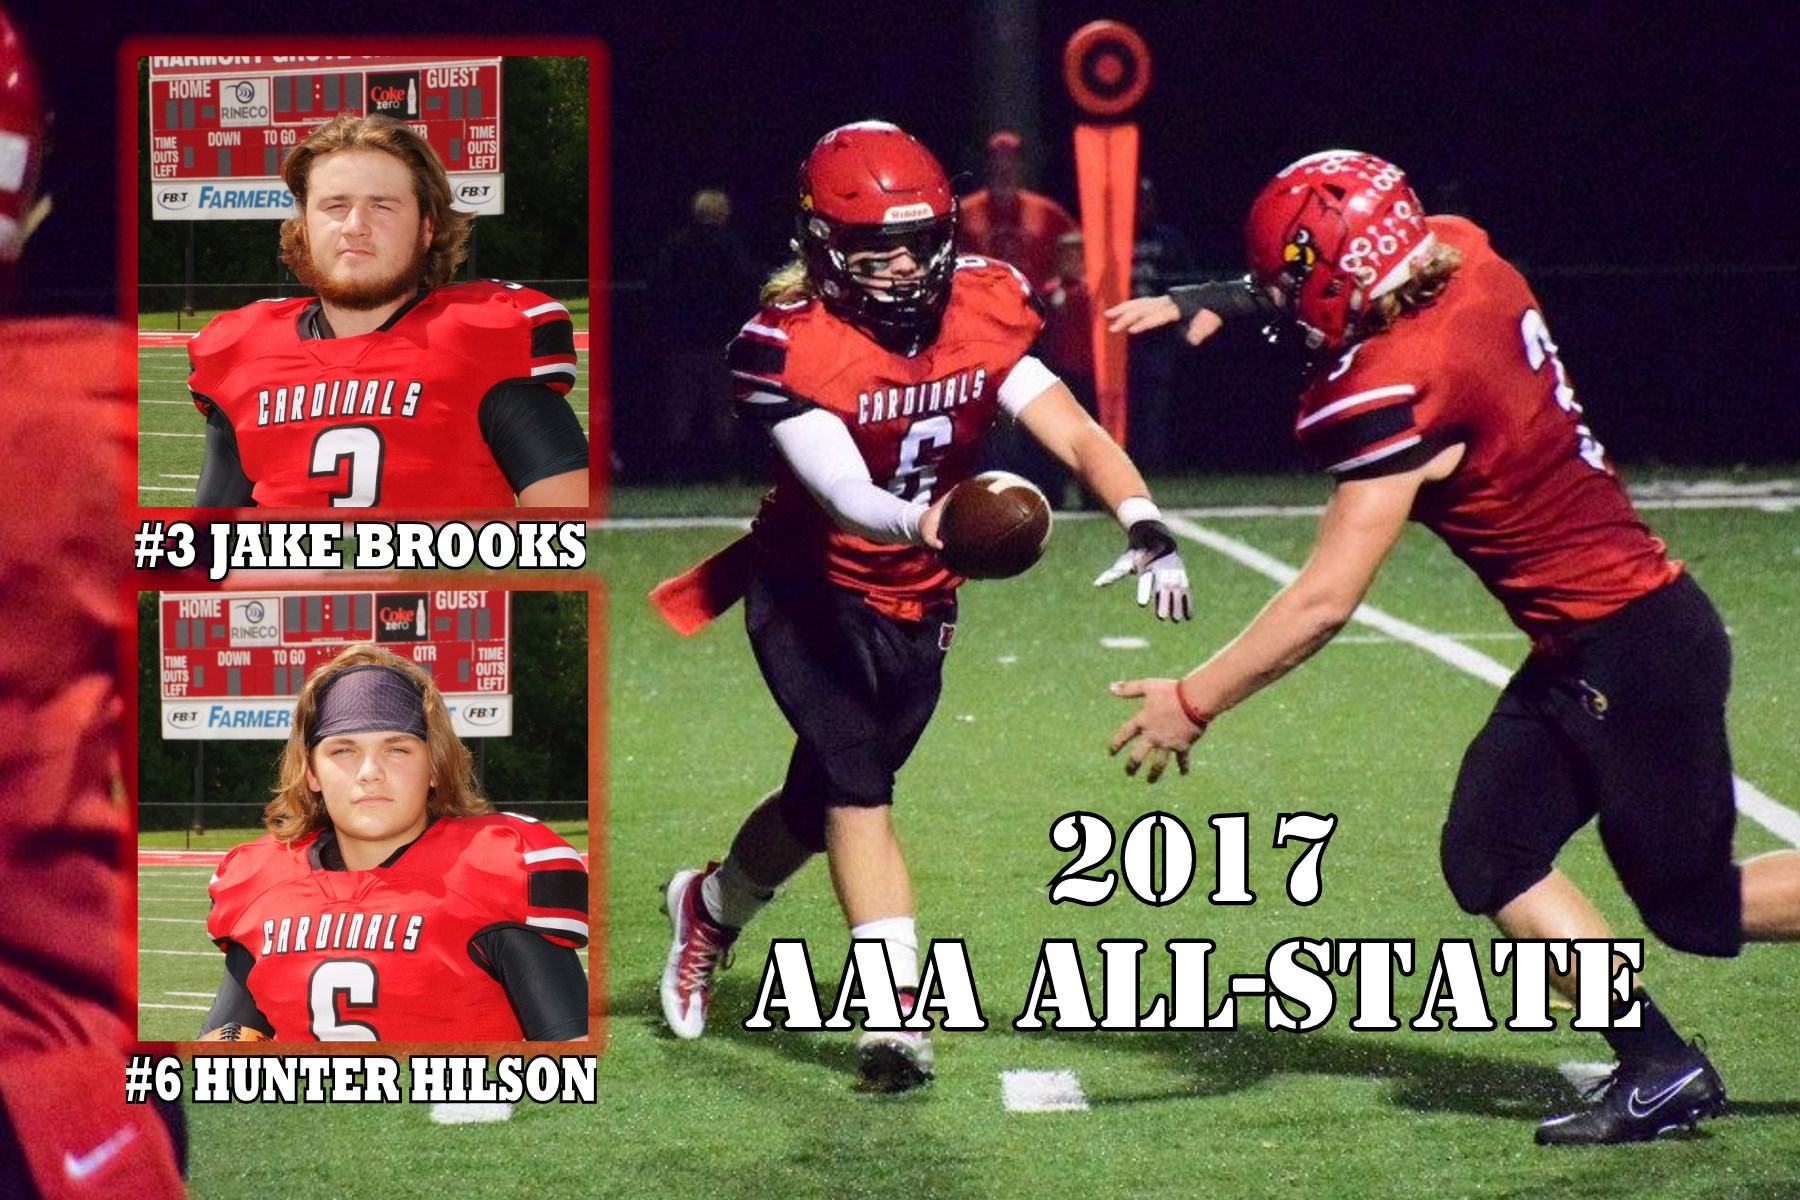 Cards receive two AAA All-State honors